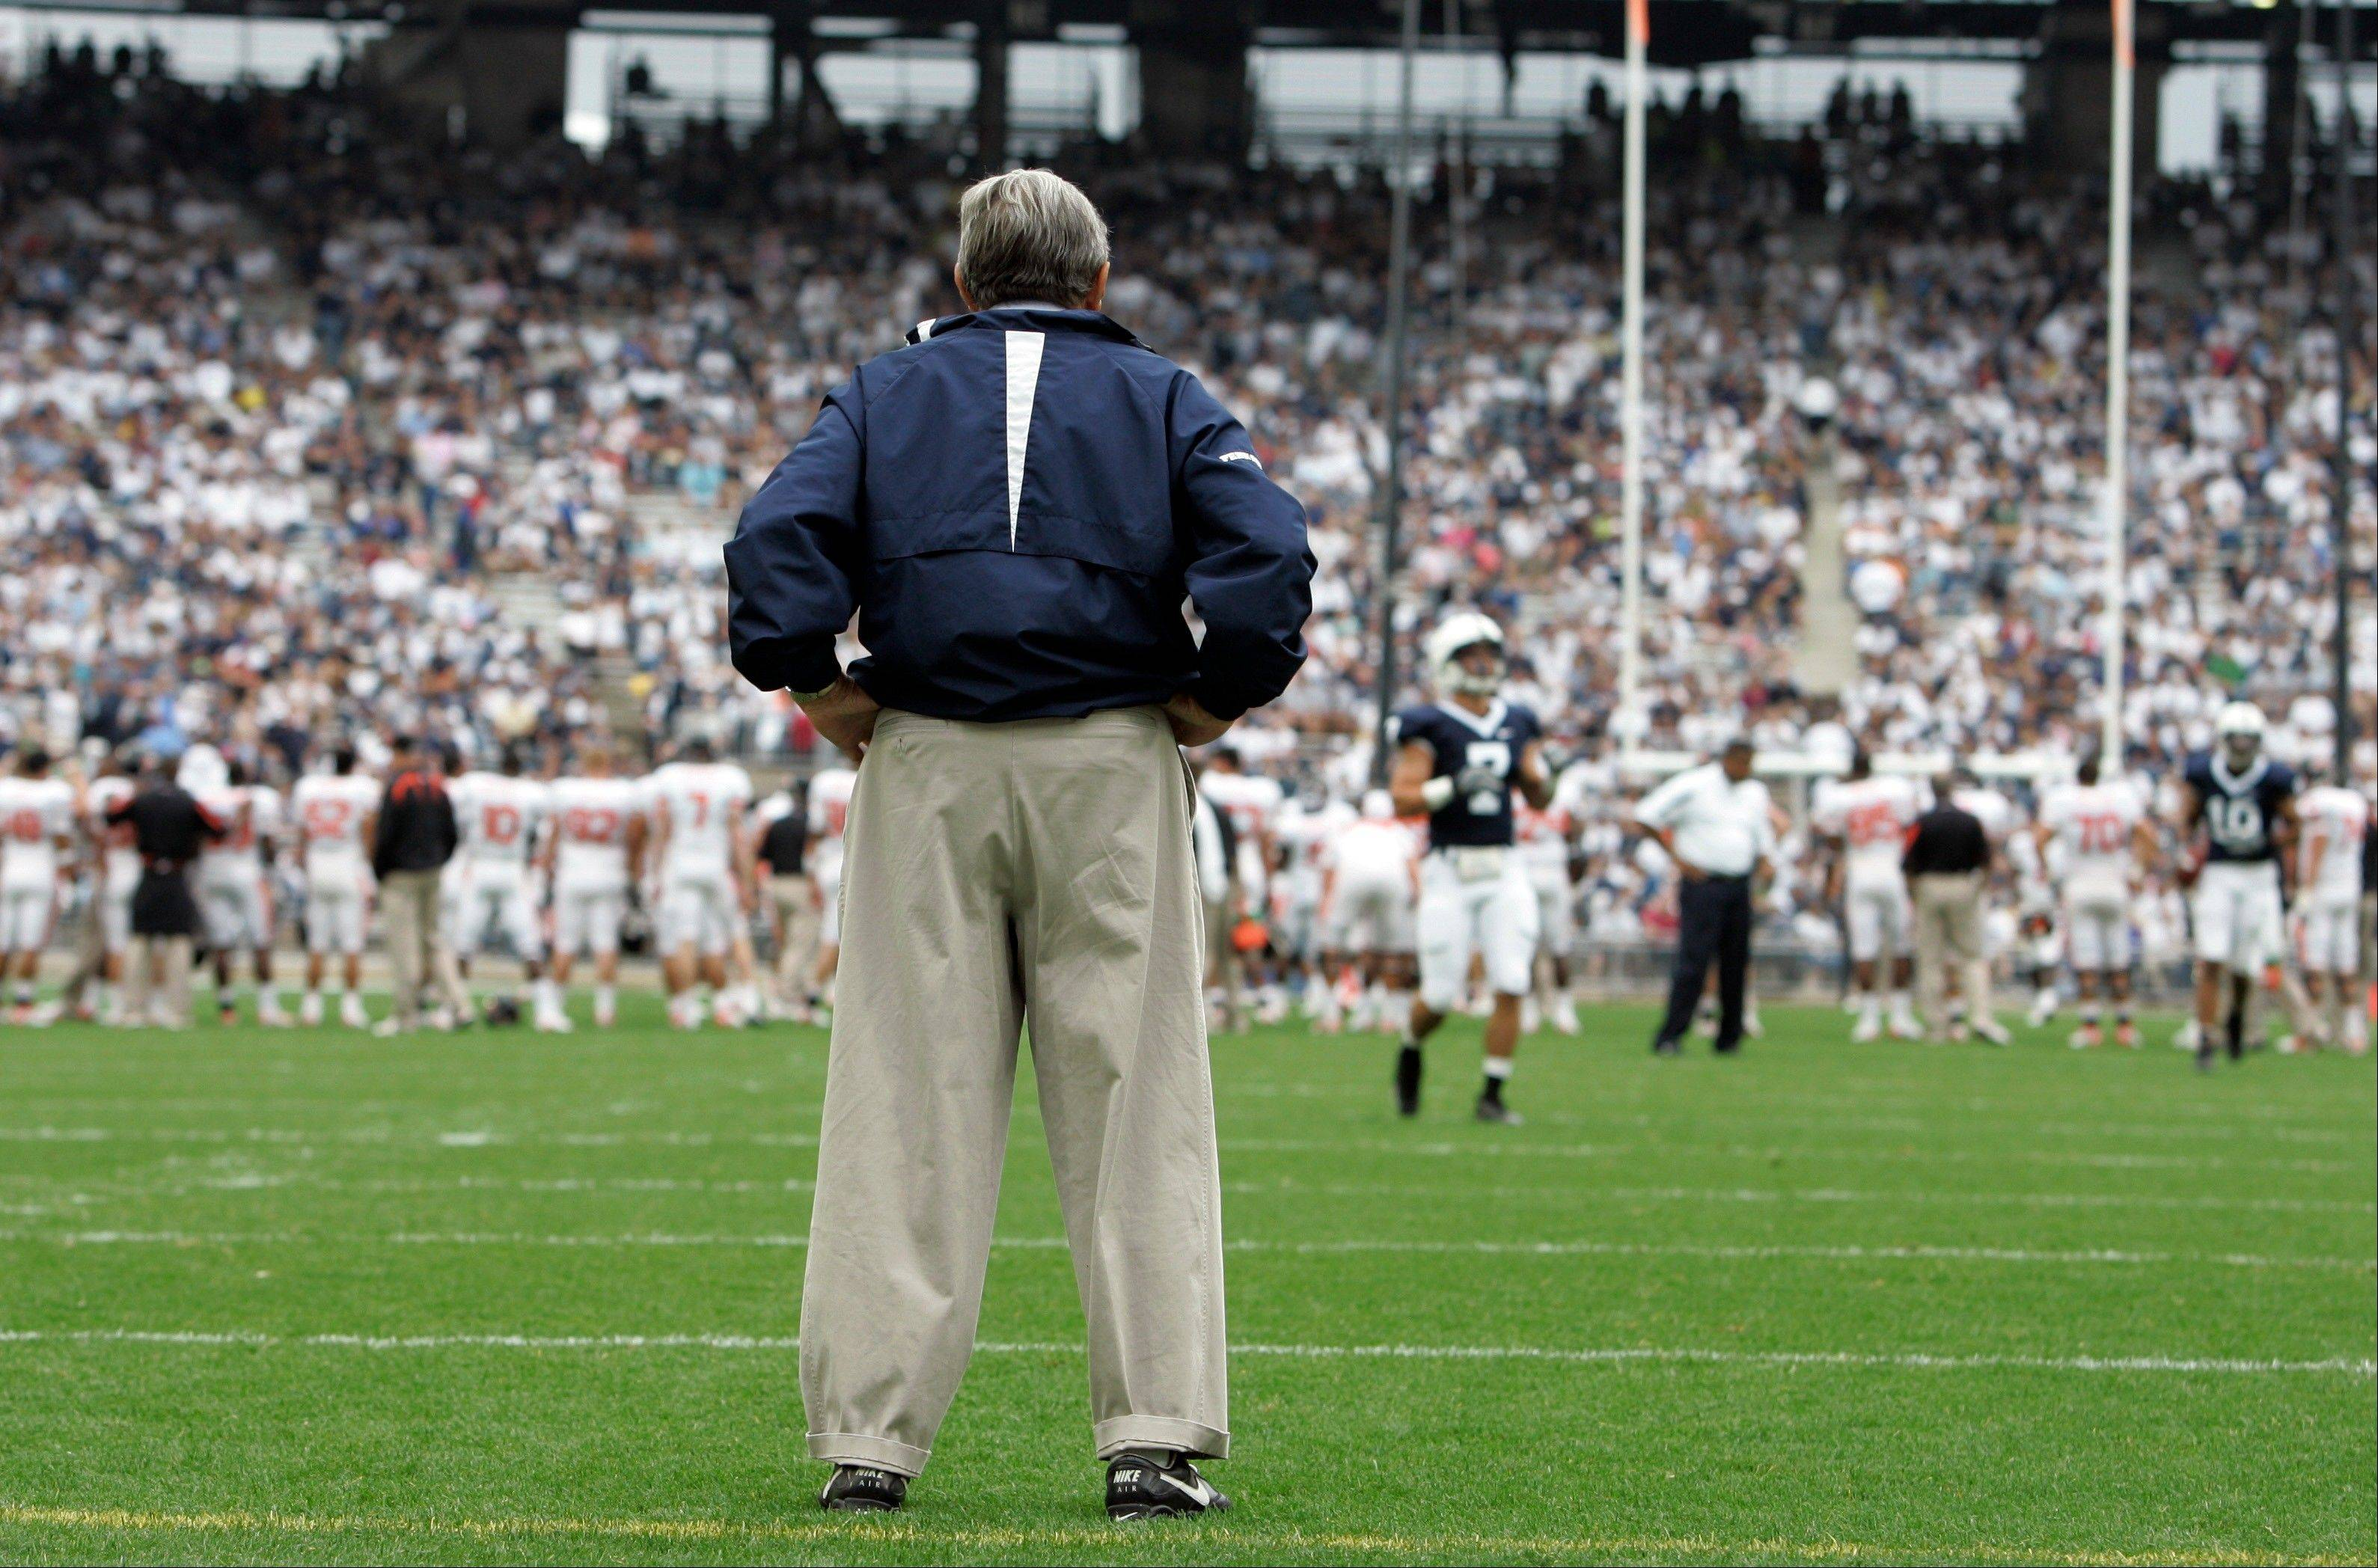 The legacy of the late Penn State football coach Joe Paterno took another big hit Monday with the announcement of NCAA sanctions.